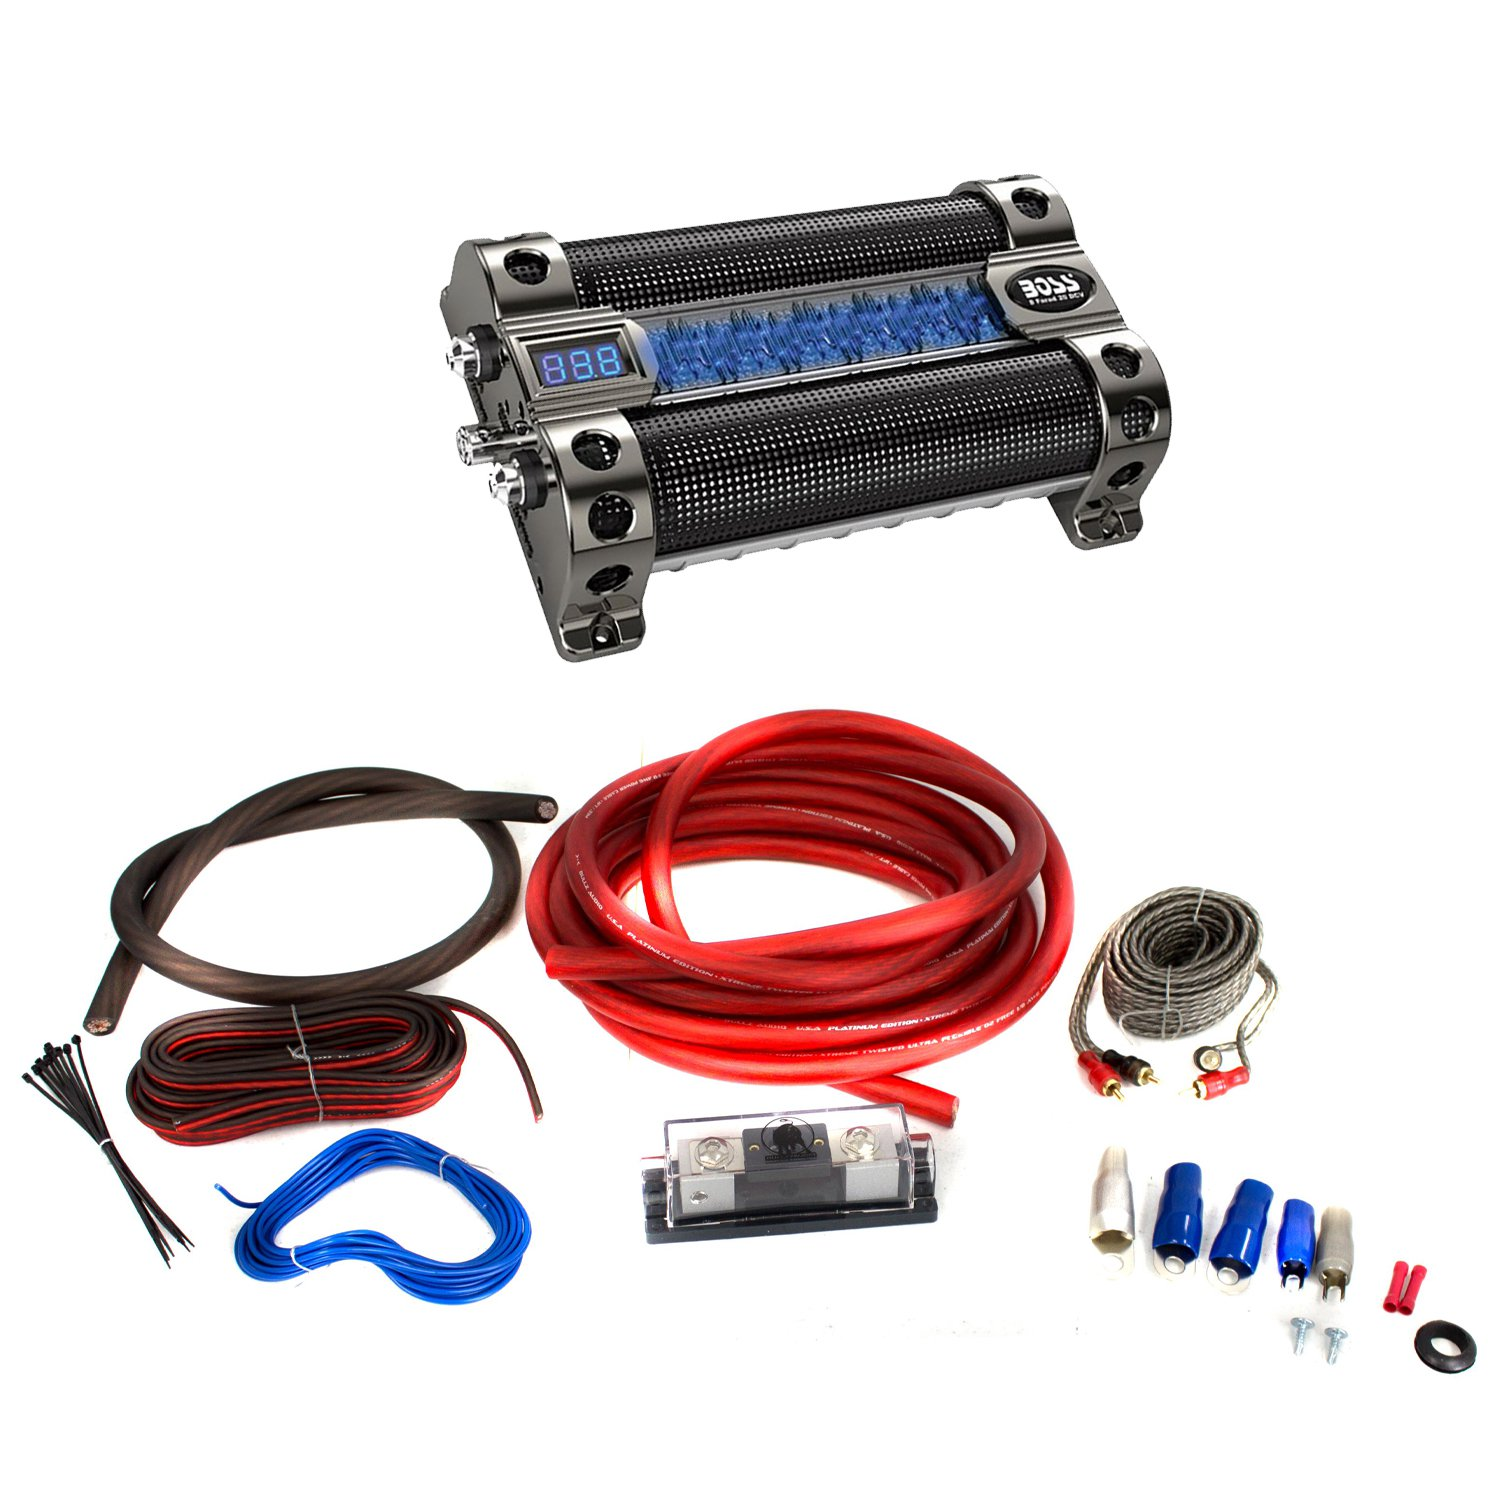 Amp Wiring Kits With Capacitors Wire Data Schema Car Amplifier Images Gallery